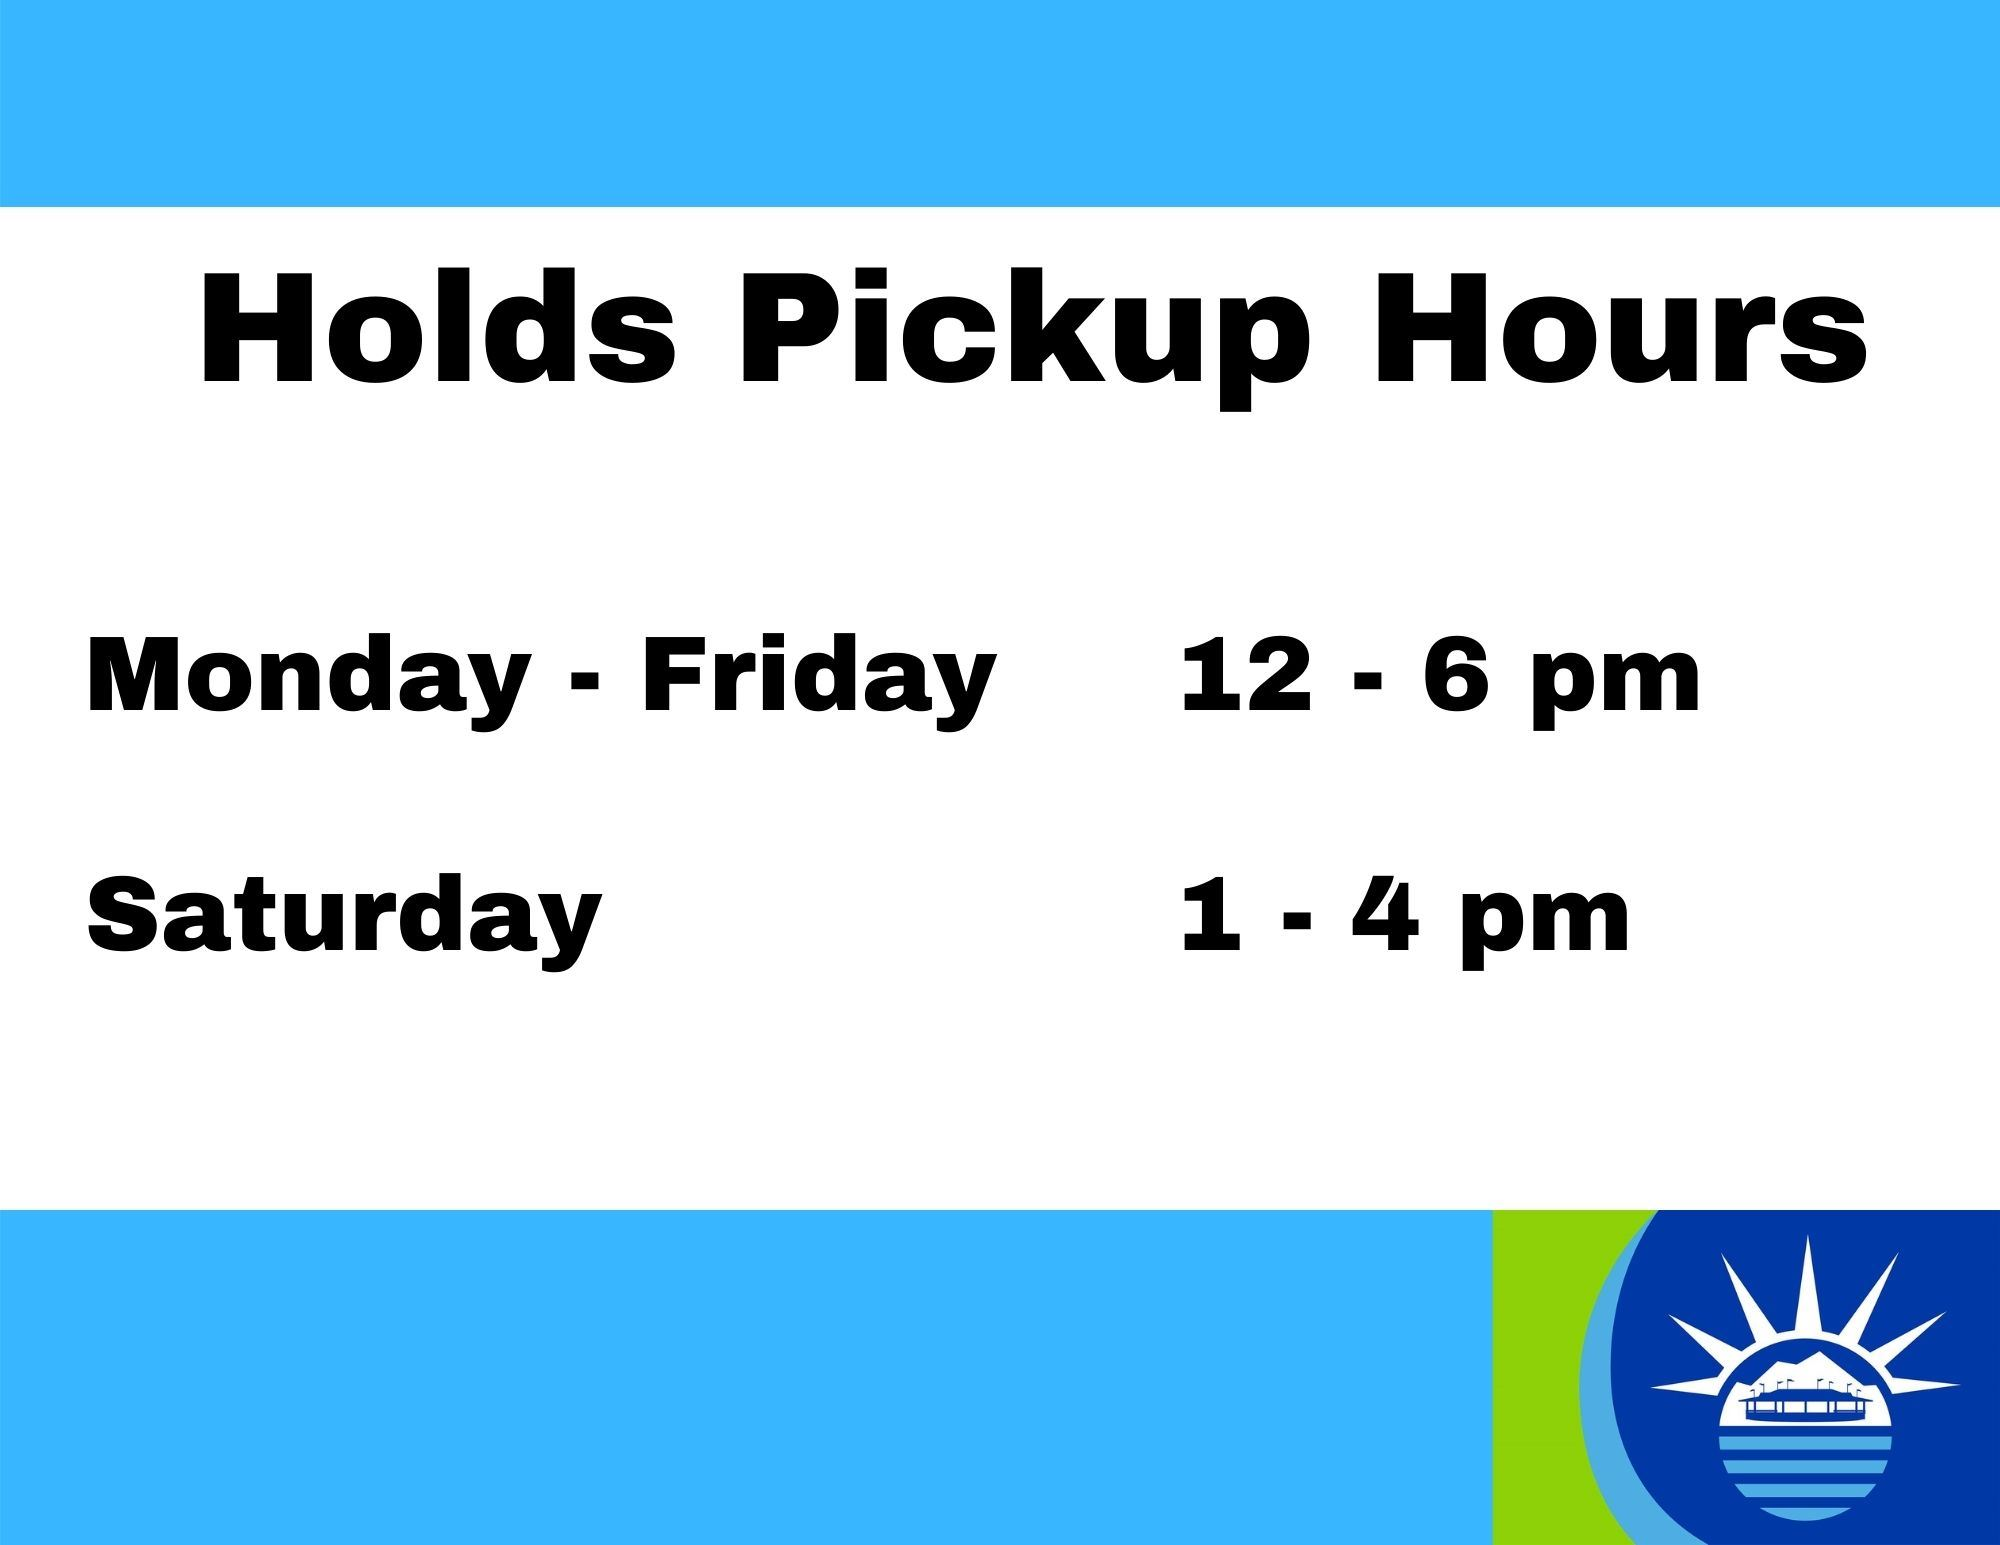 Holds Pickup Hours 1.19.2021